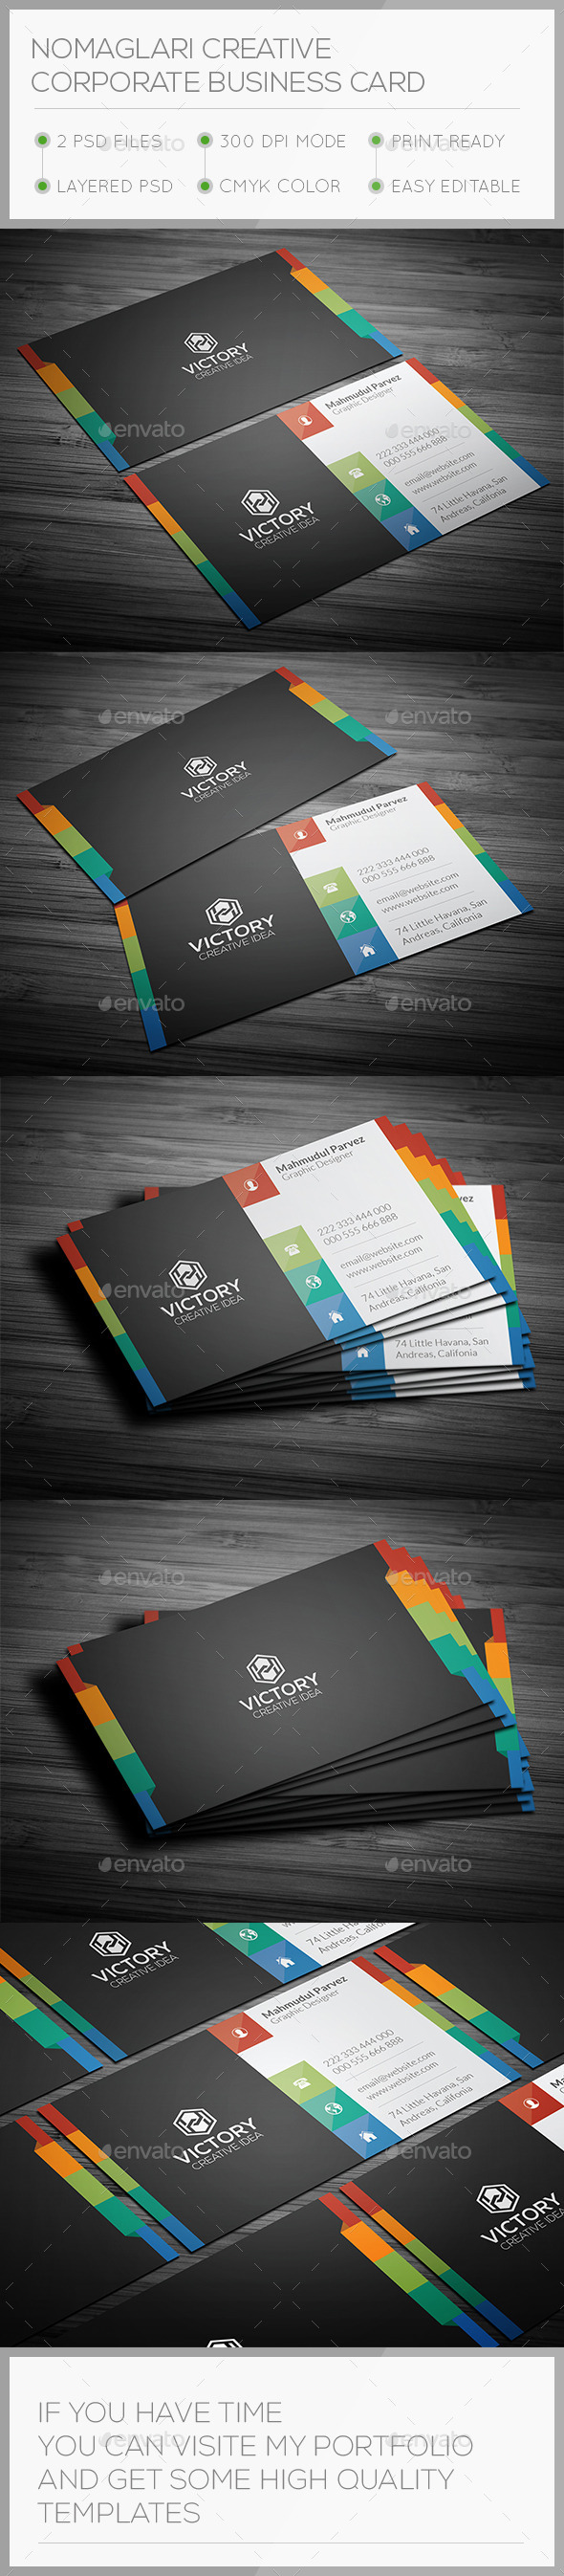 Nomaglari Creative Business Card - Creative Business Cards